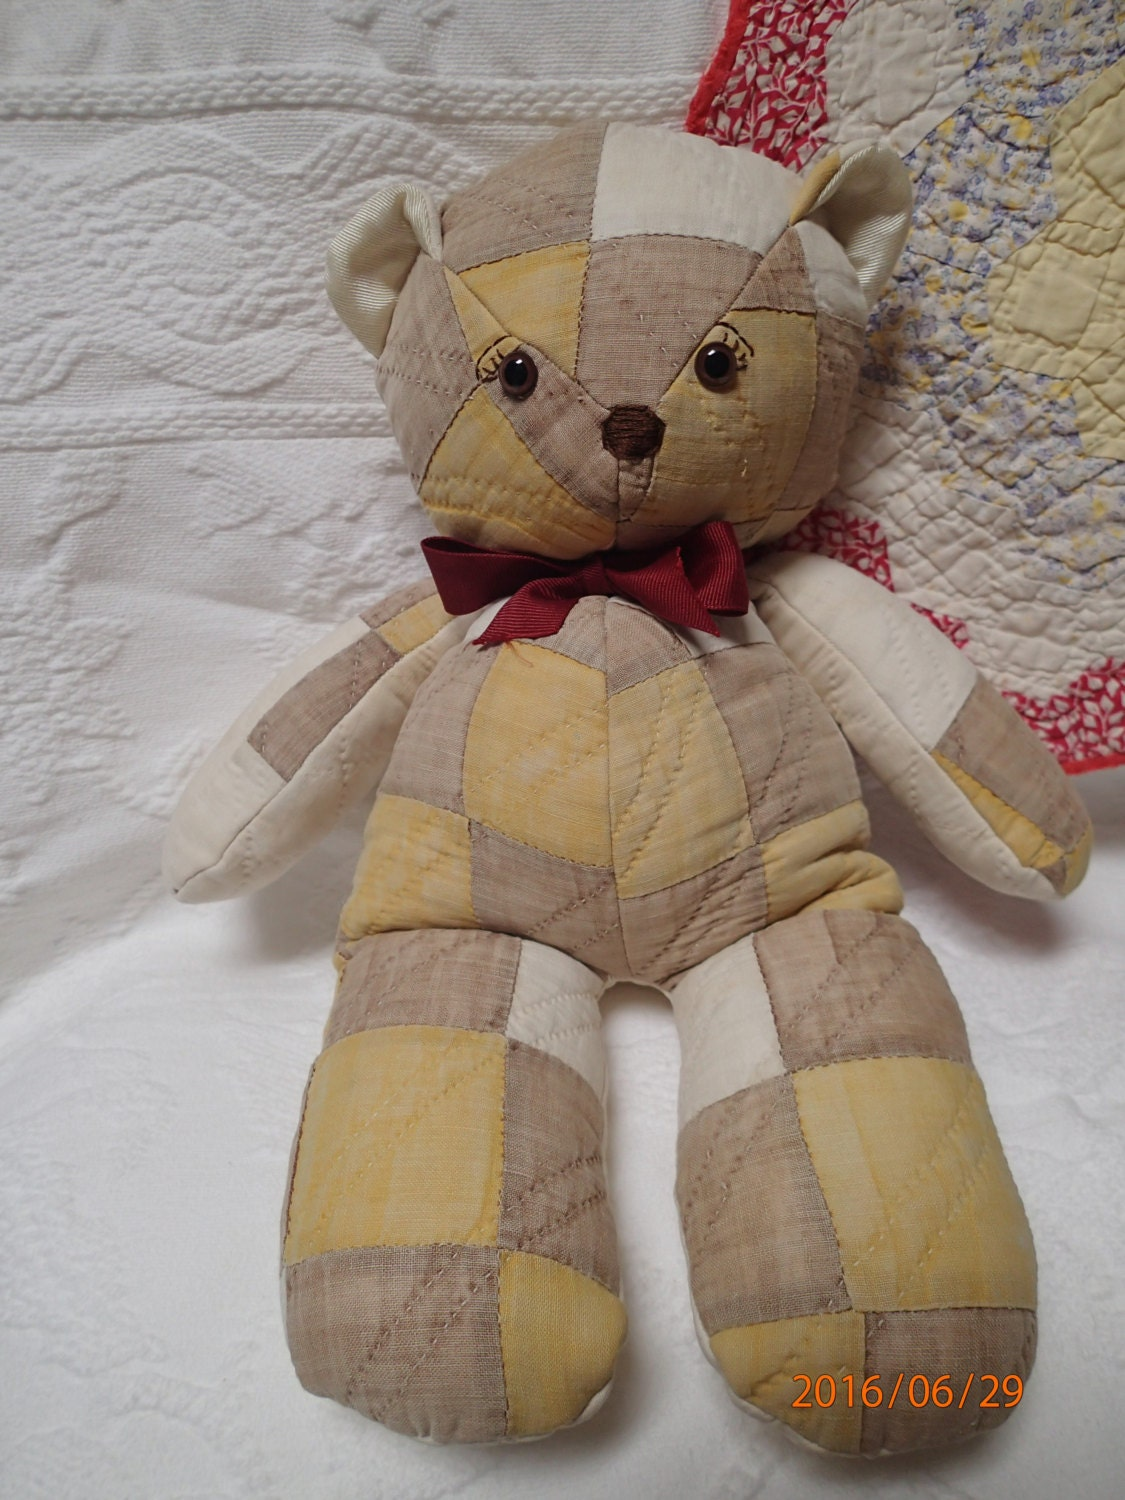 Quilted Teddy Bear Vintage Quilt Primitive Rustic Decor